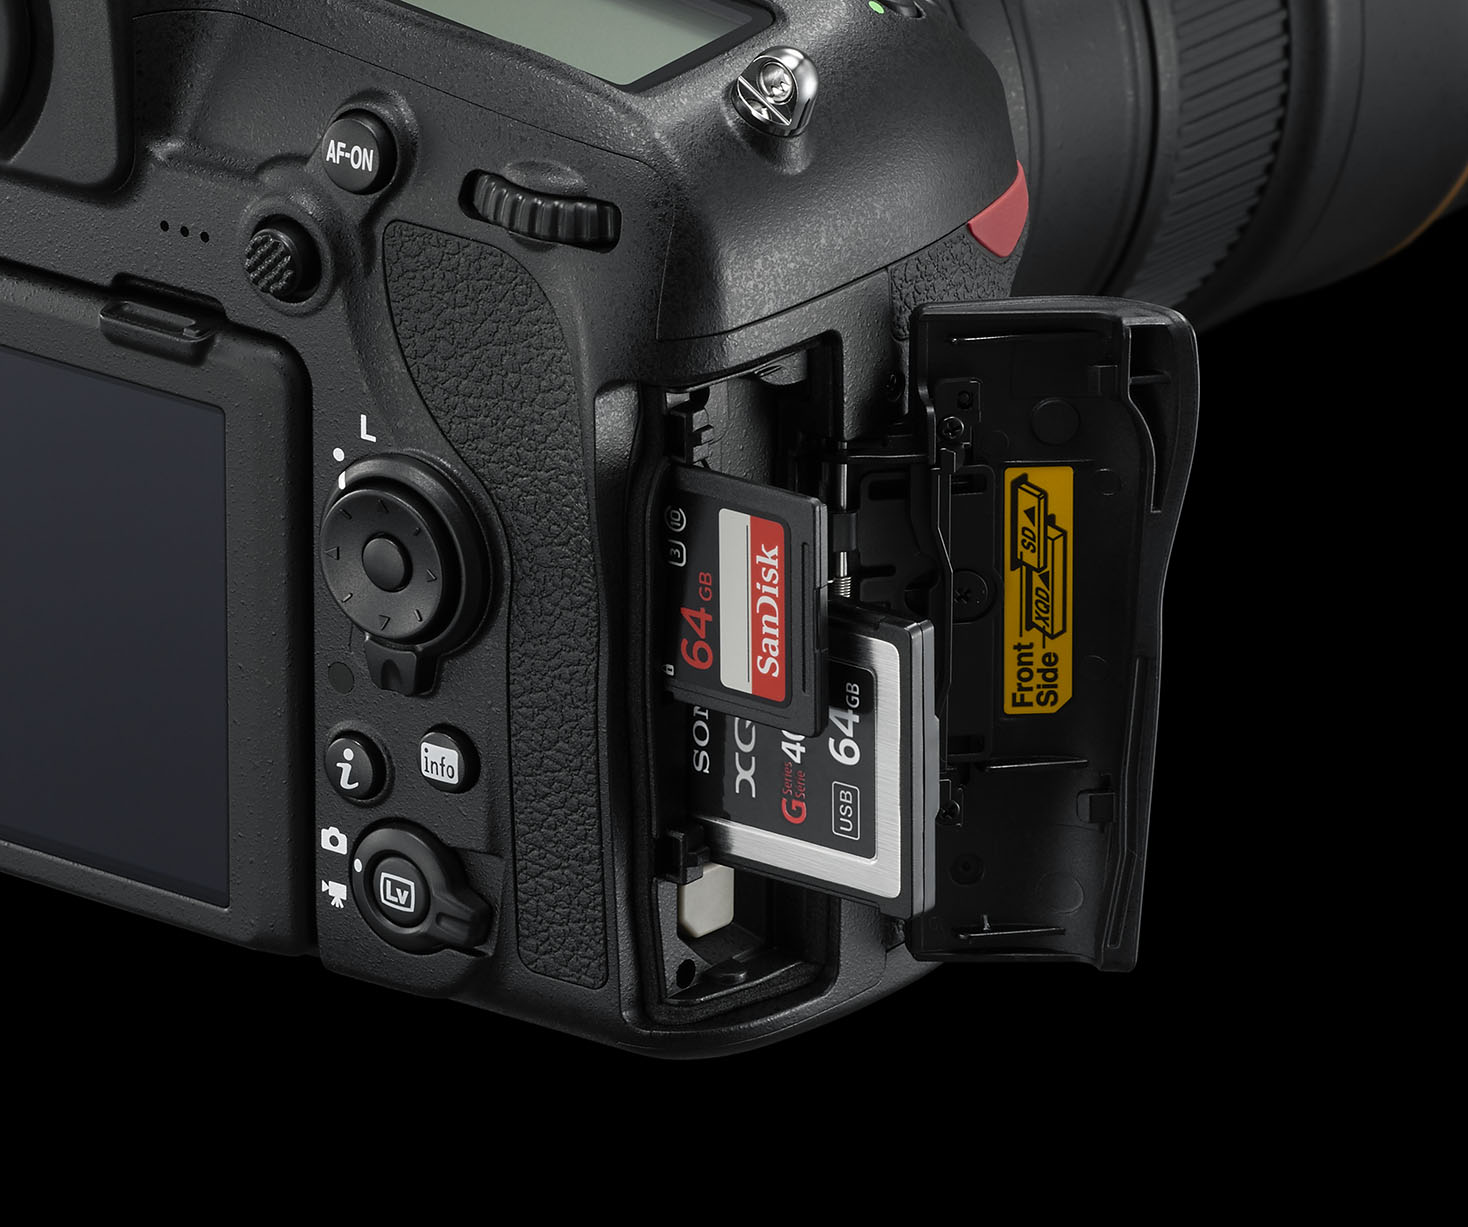 Nikon D850 with dual card UHS-II SD card slot and XQD card slot